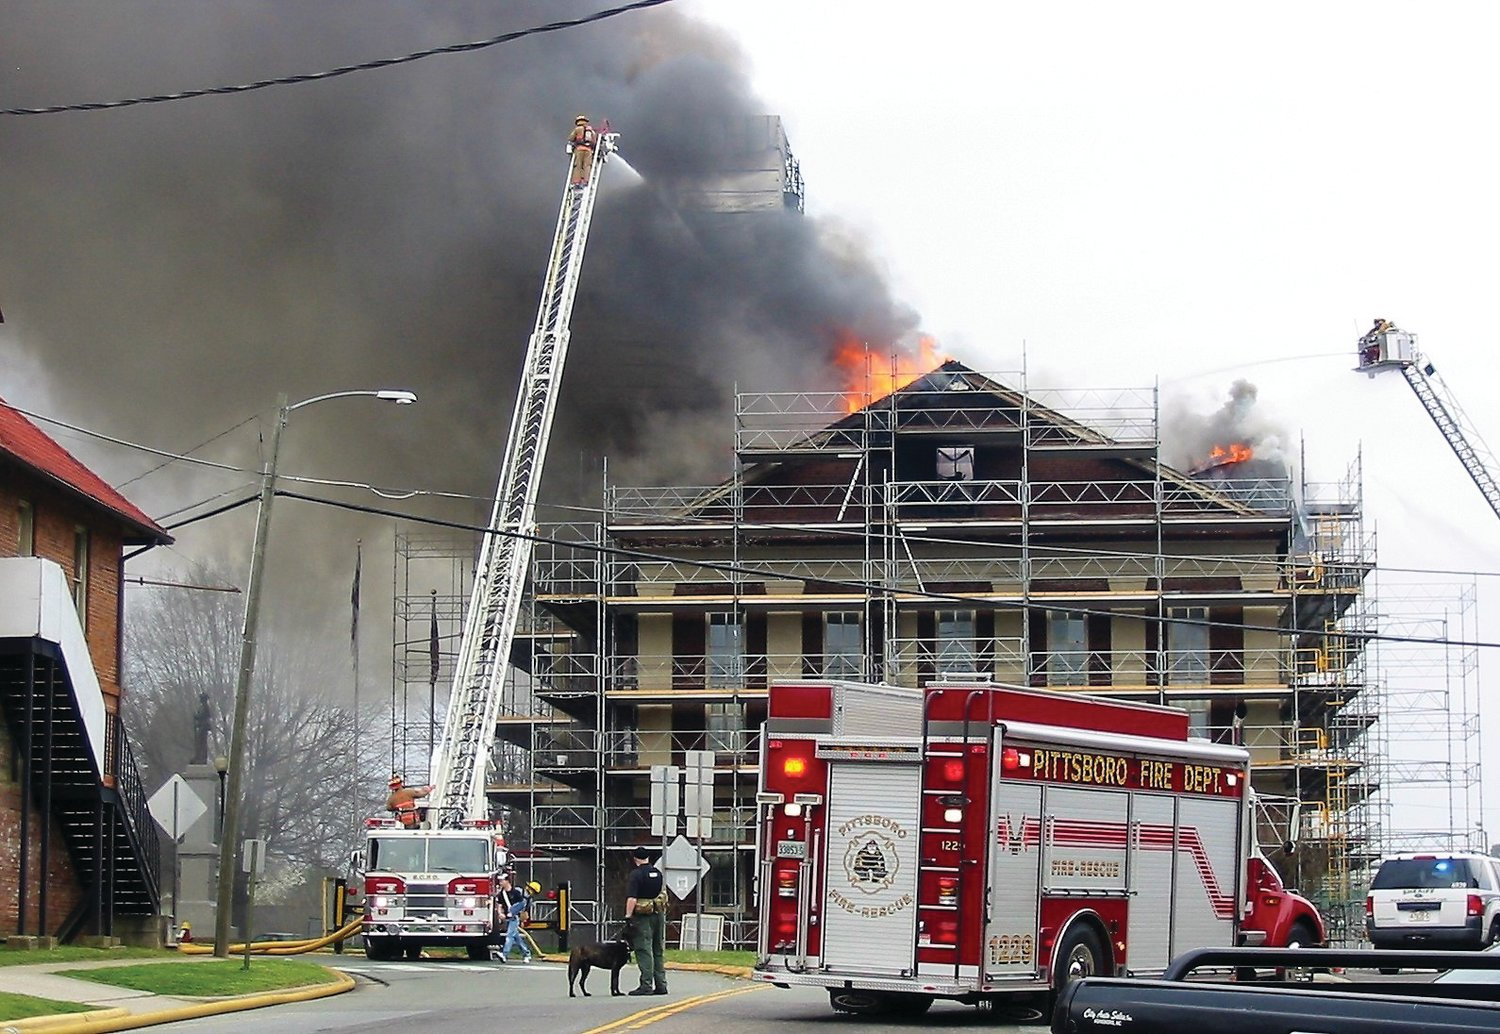 Firefighters were on the scene soon after the courthouse caught fire around 4:30 p.m. They would fight through the evening and into the next morning before it was contained.